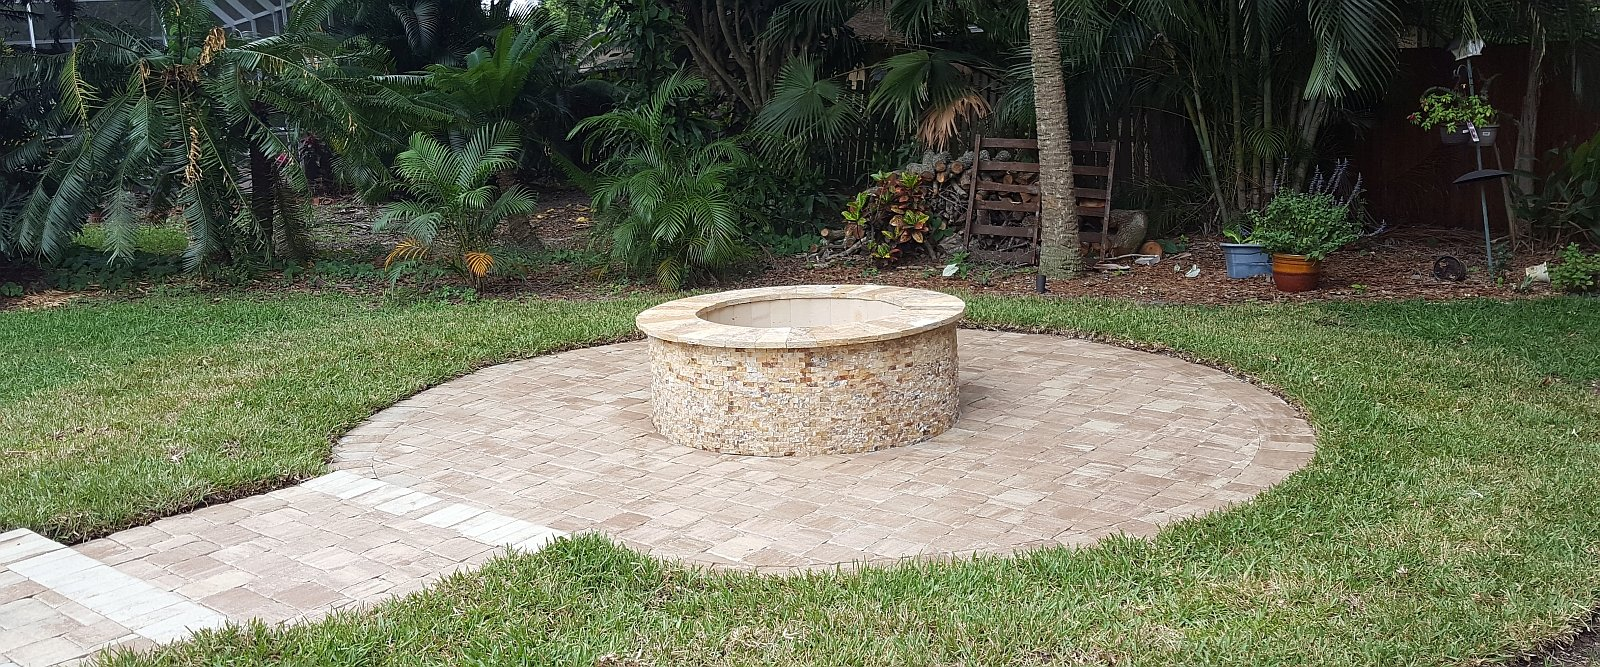 fire_pit_project_2